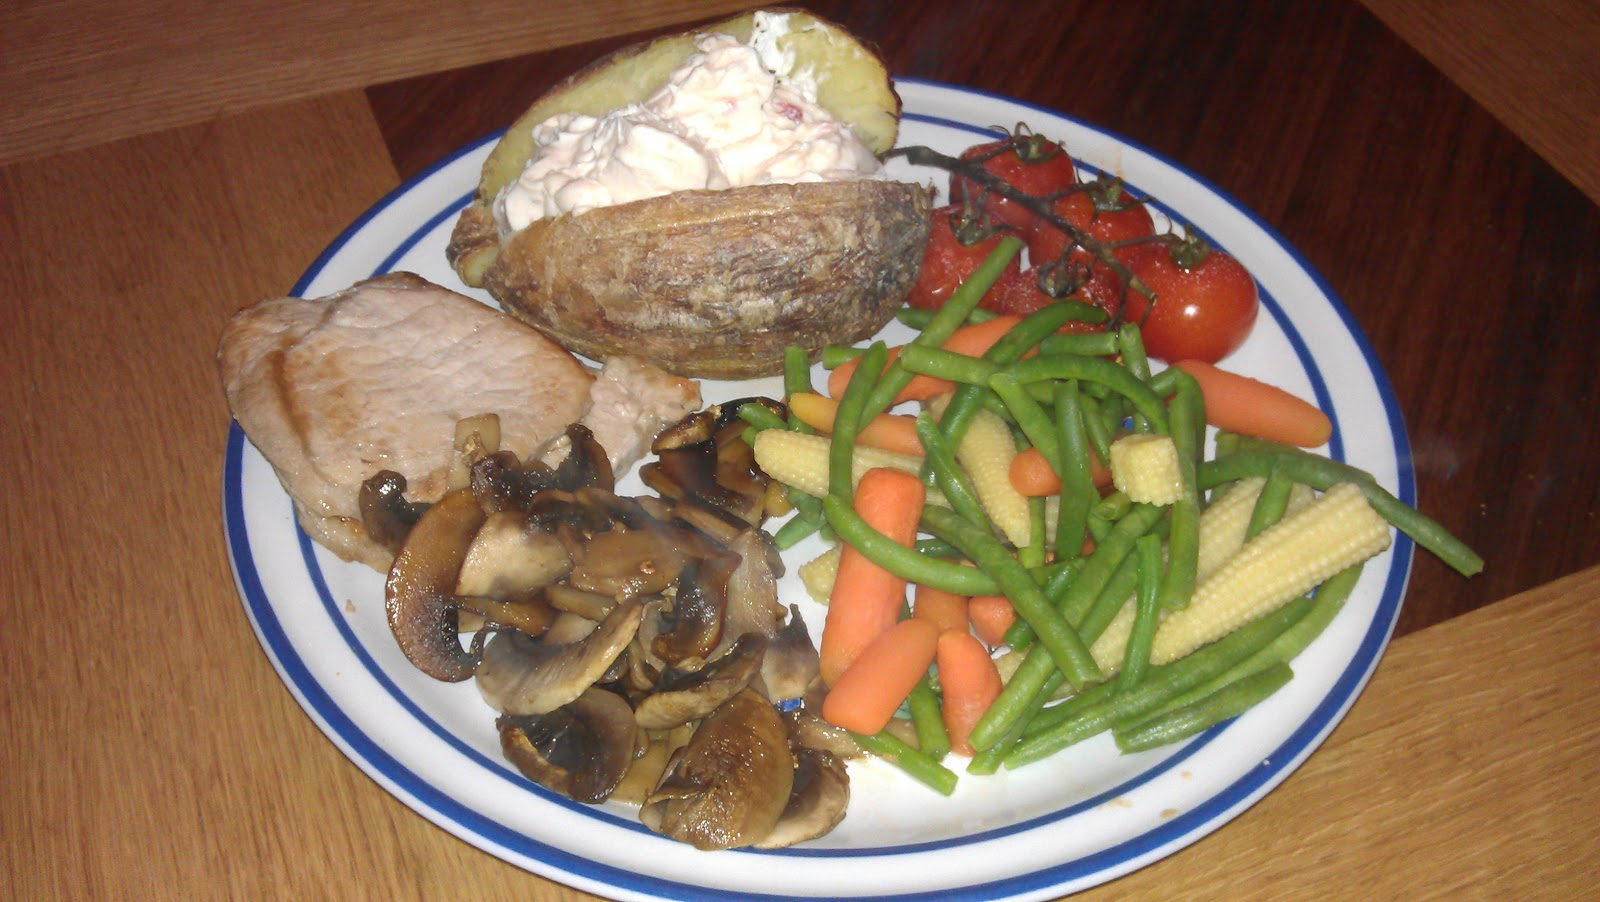 Flab 2 fab pork with jacket potato philidelphia and for Jacket potato fillings mushroom